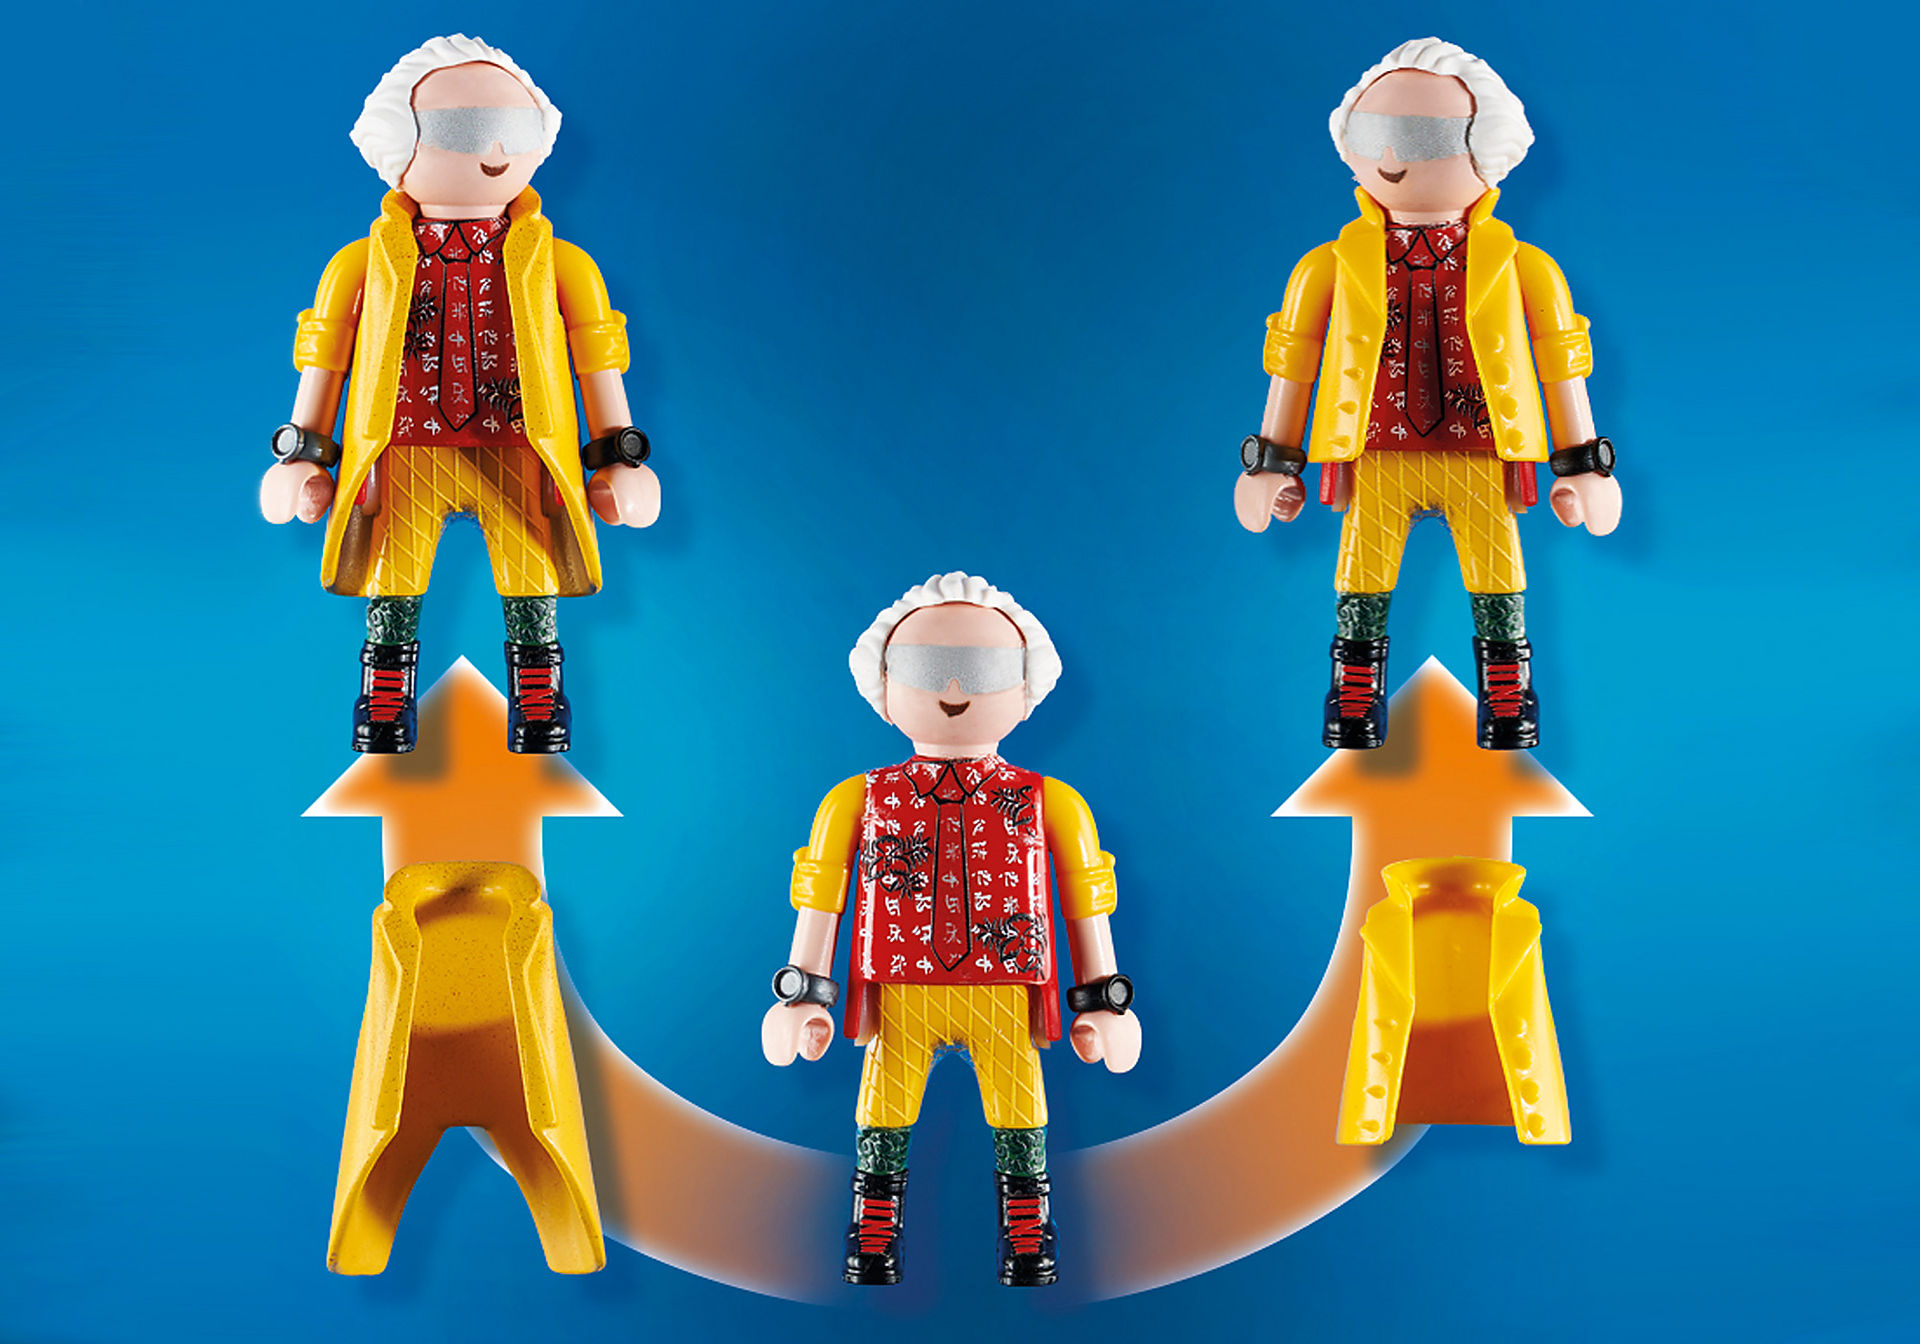 70634 Back to the Future Part II Hoverboard Chase zoom image4